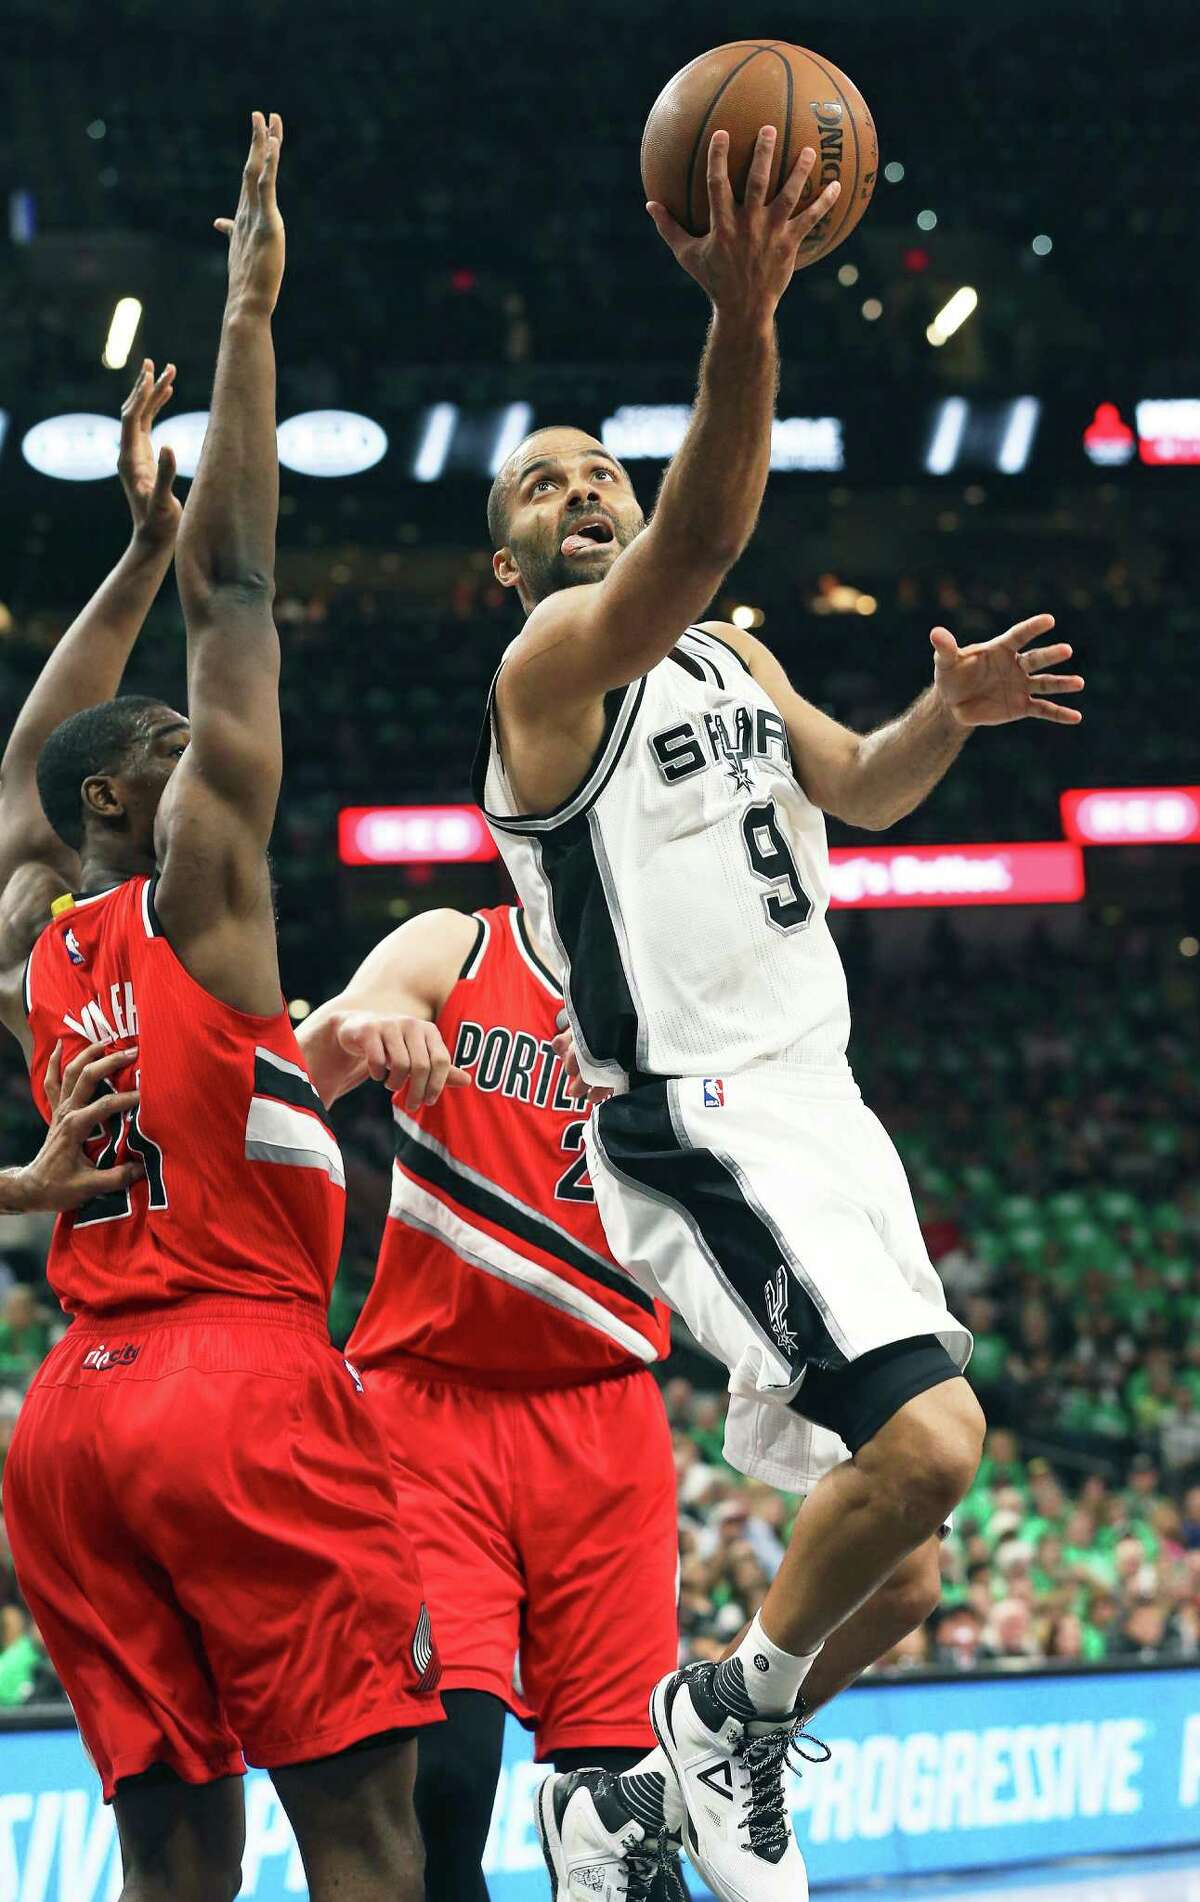 Tony Parker twists in for a layup as the Spurs host the Blazers at the AT&T Center on March 17, 2016.